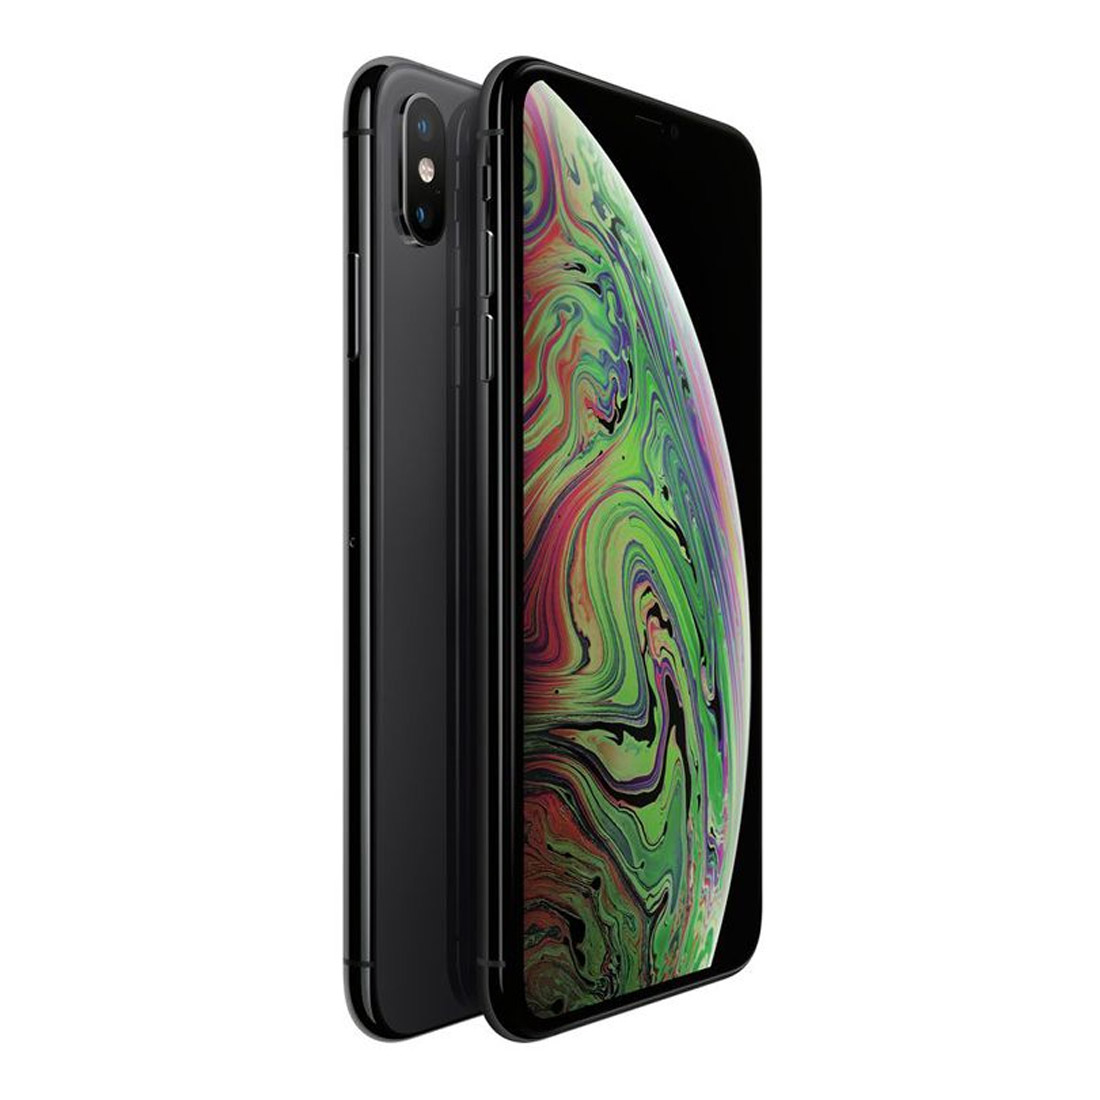 [Open Box - As New] Apple iPhone XS Max 64GB - Space Grey